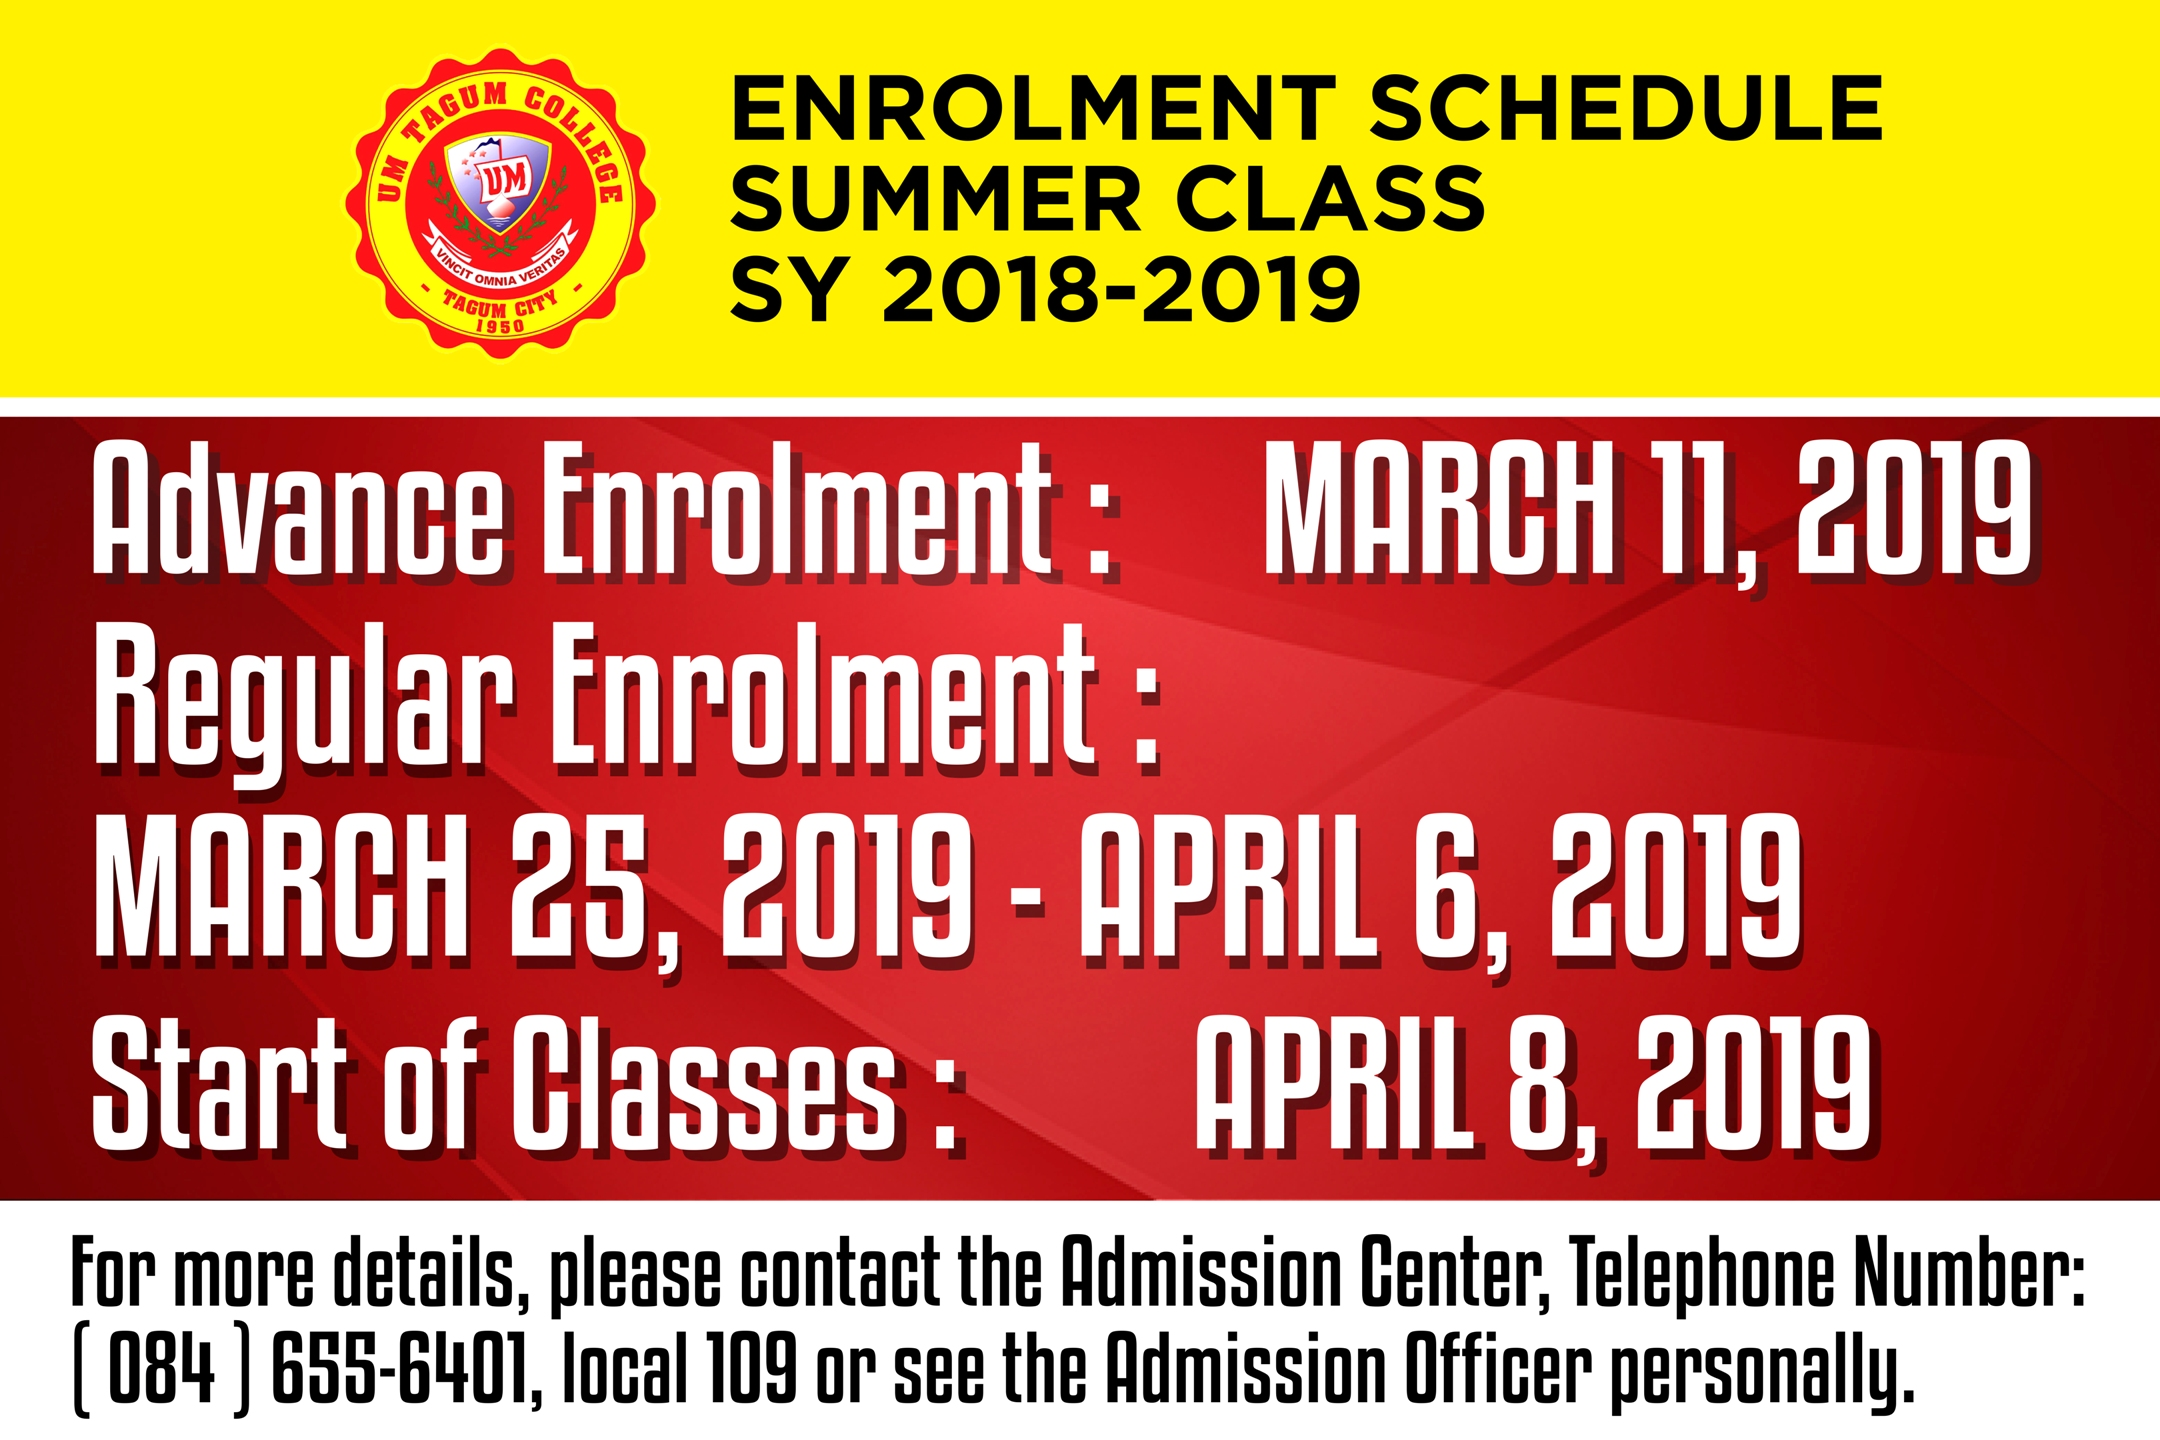 ENROLMENT SCHEDULE FOR SUMMER CLASS : SY 2018-2019